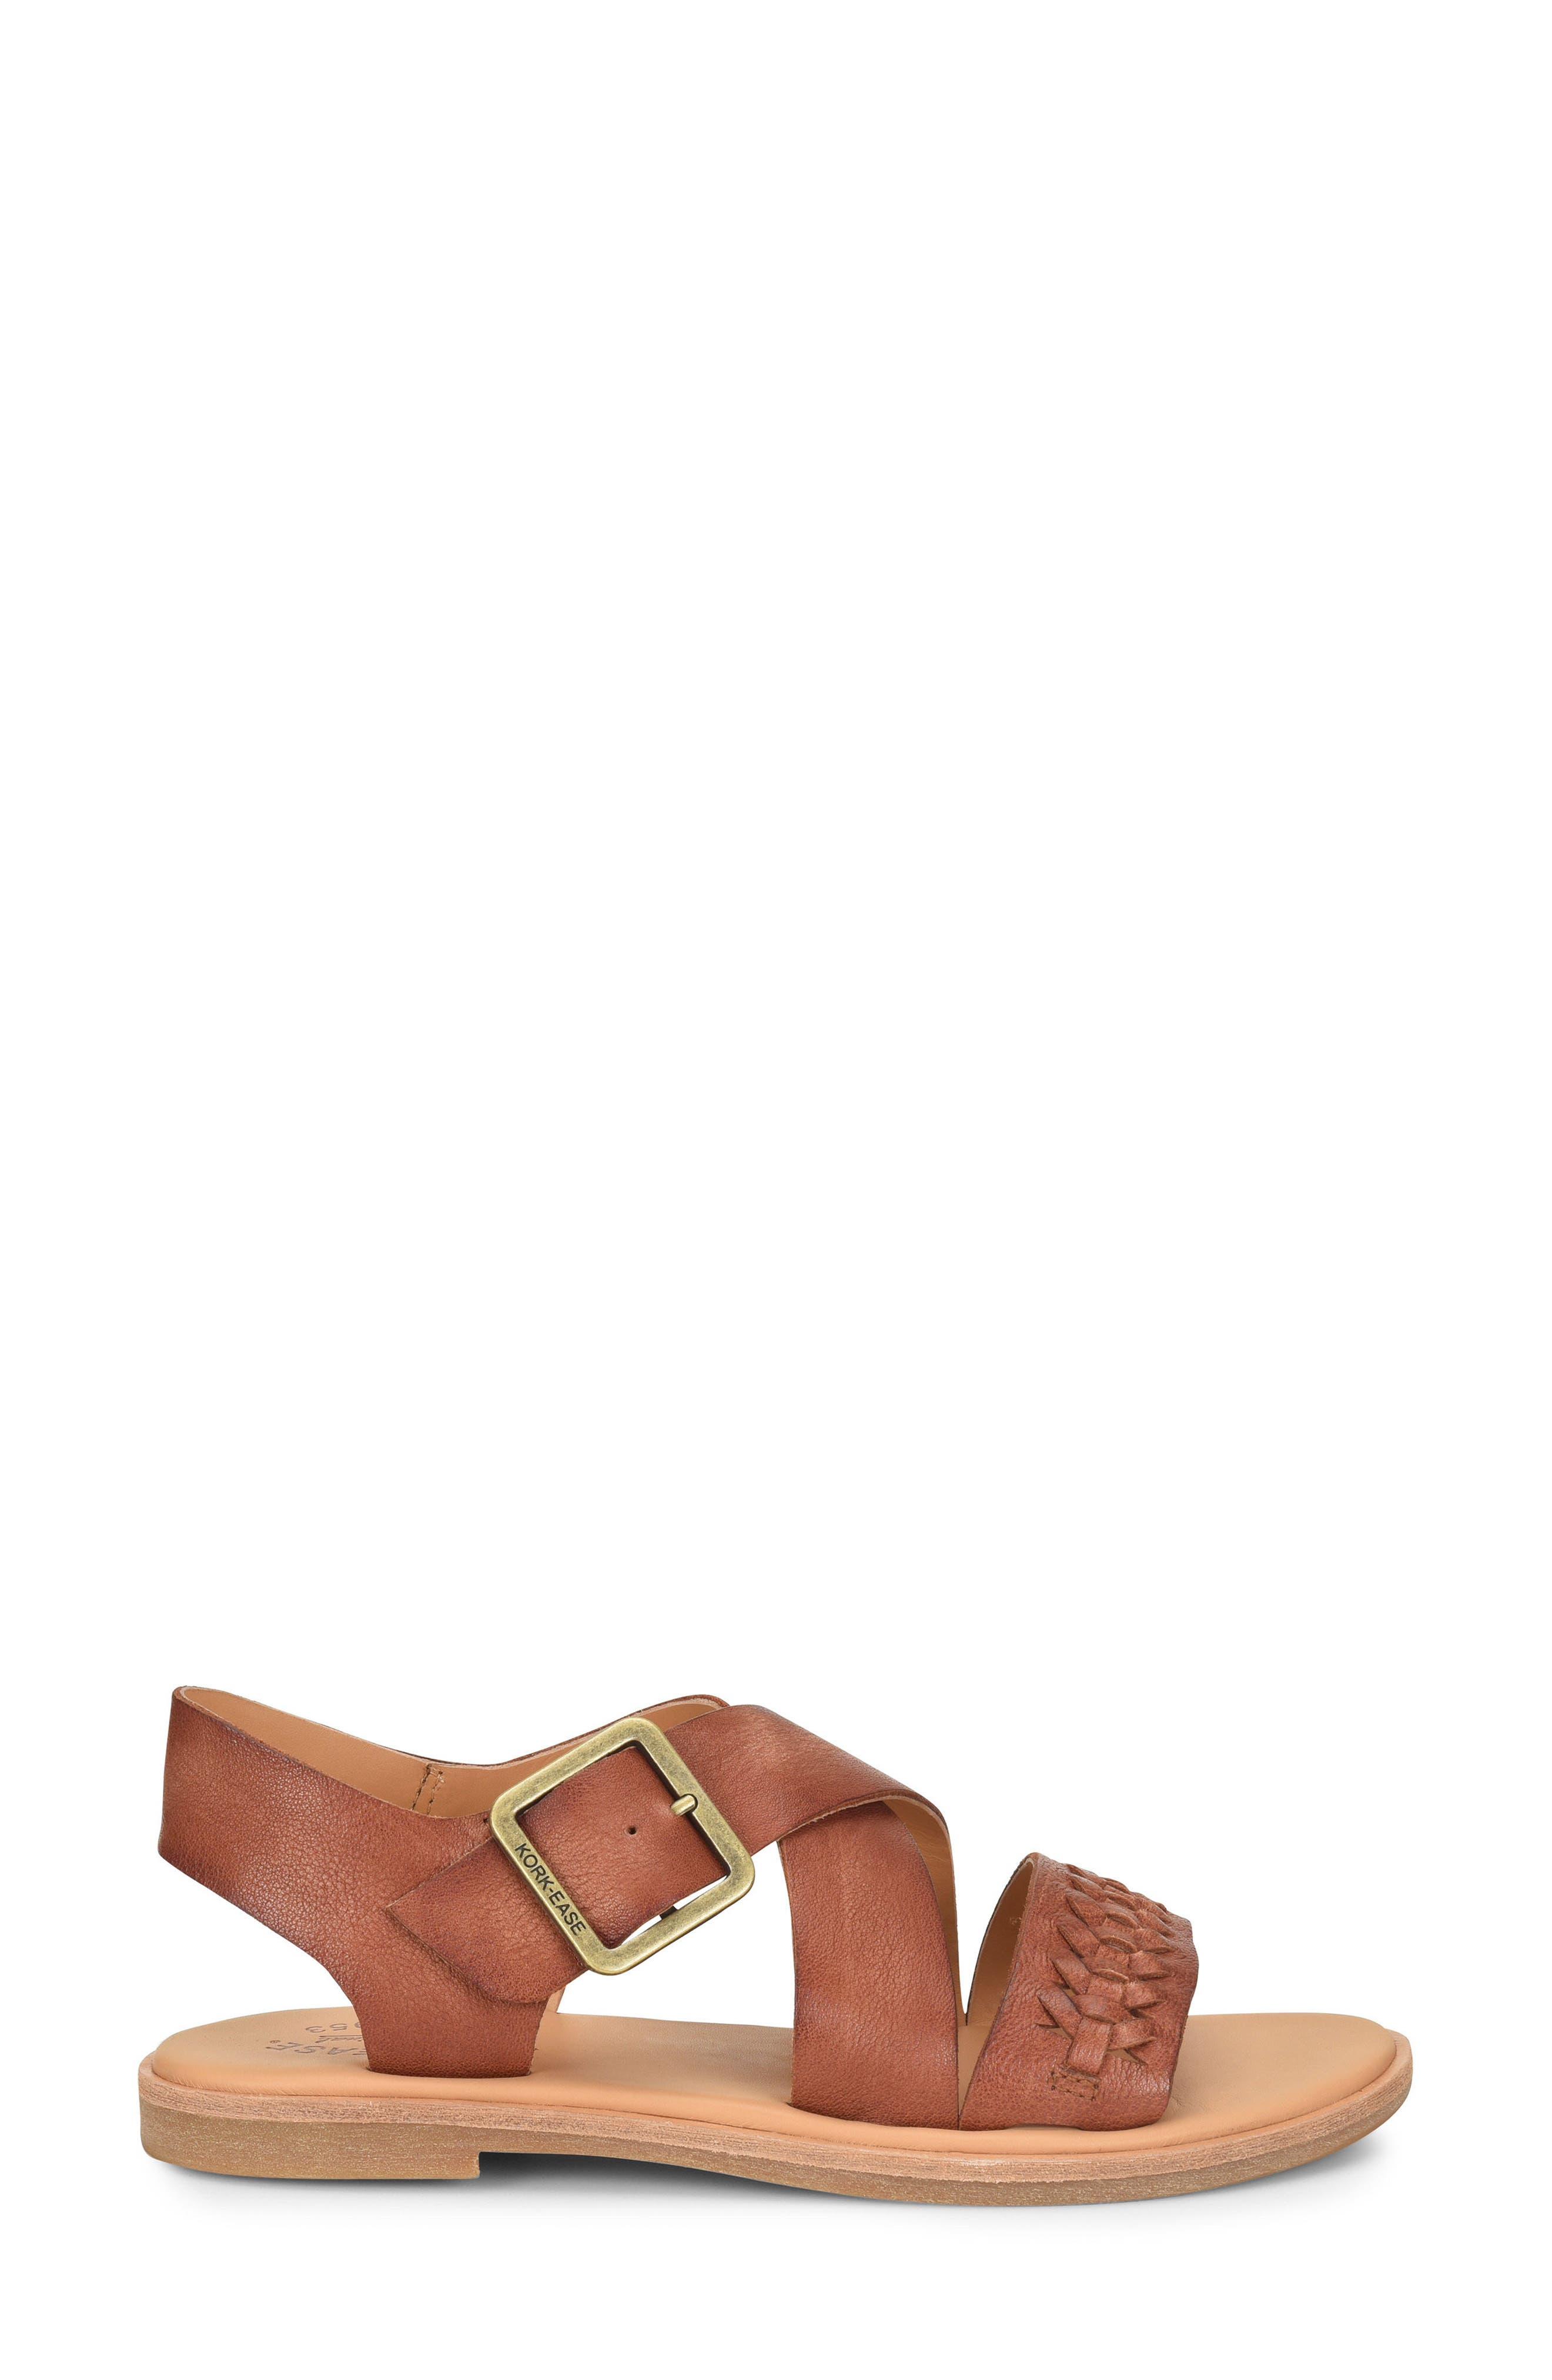 Alternate Image 3  - Kork-Ease® Nara Braid Sandal (Women)